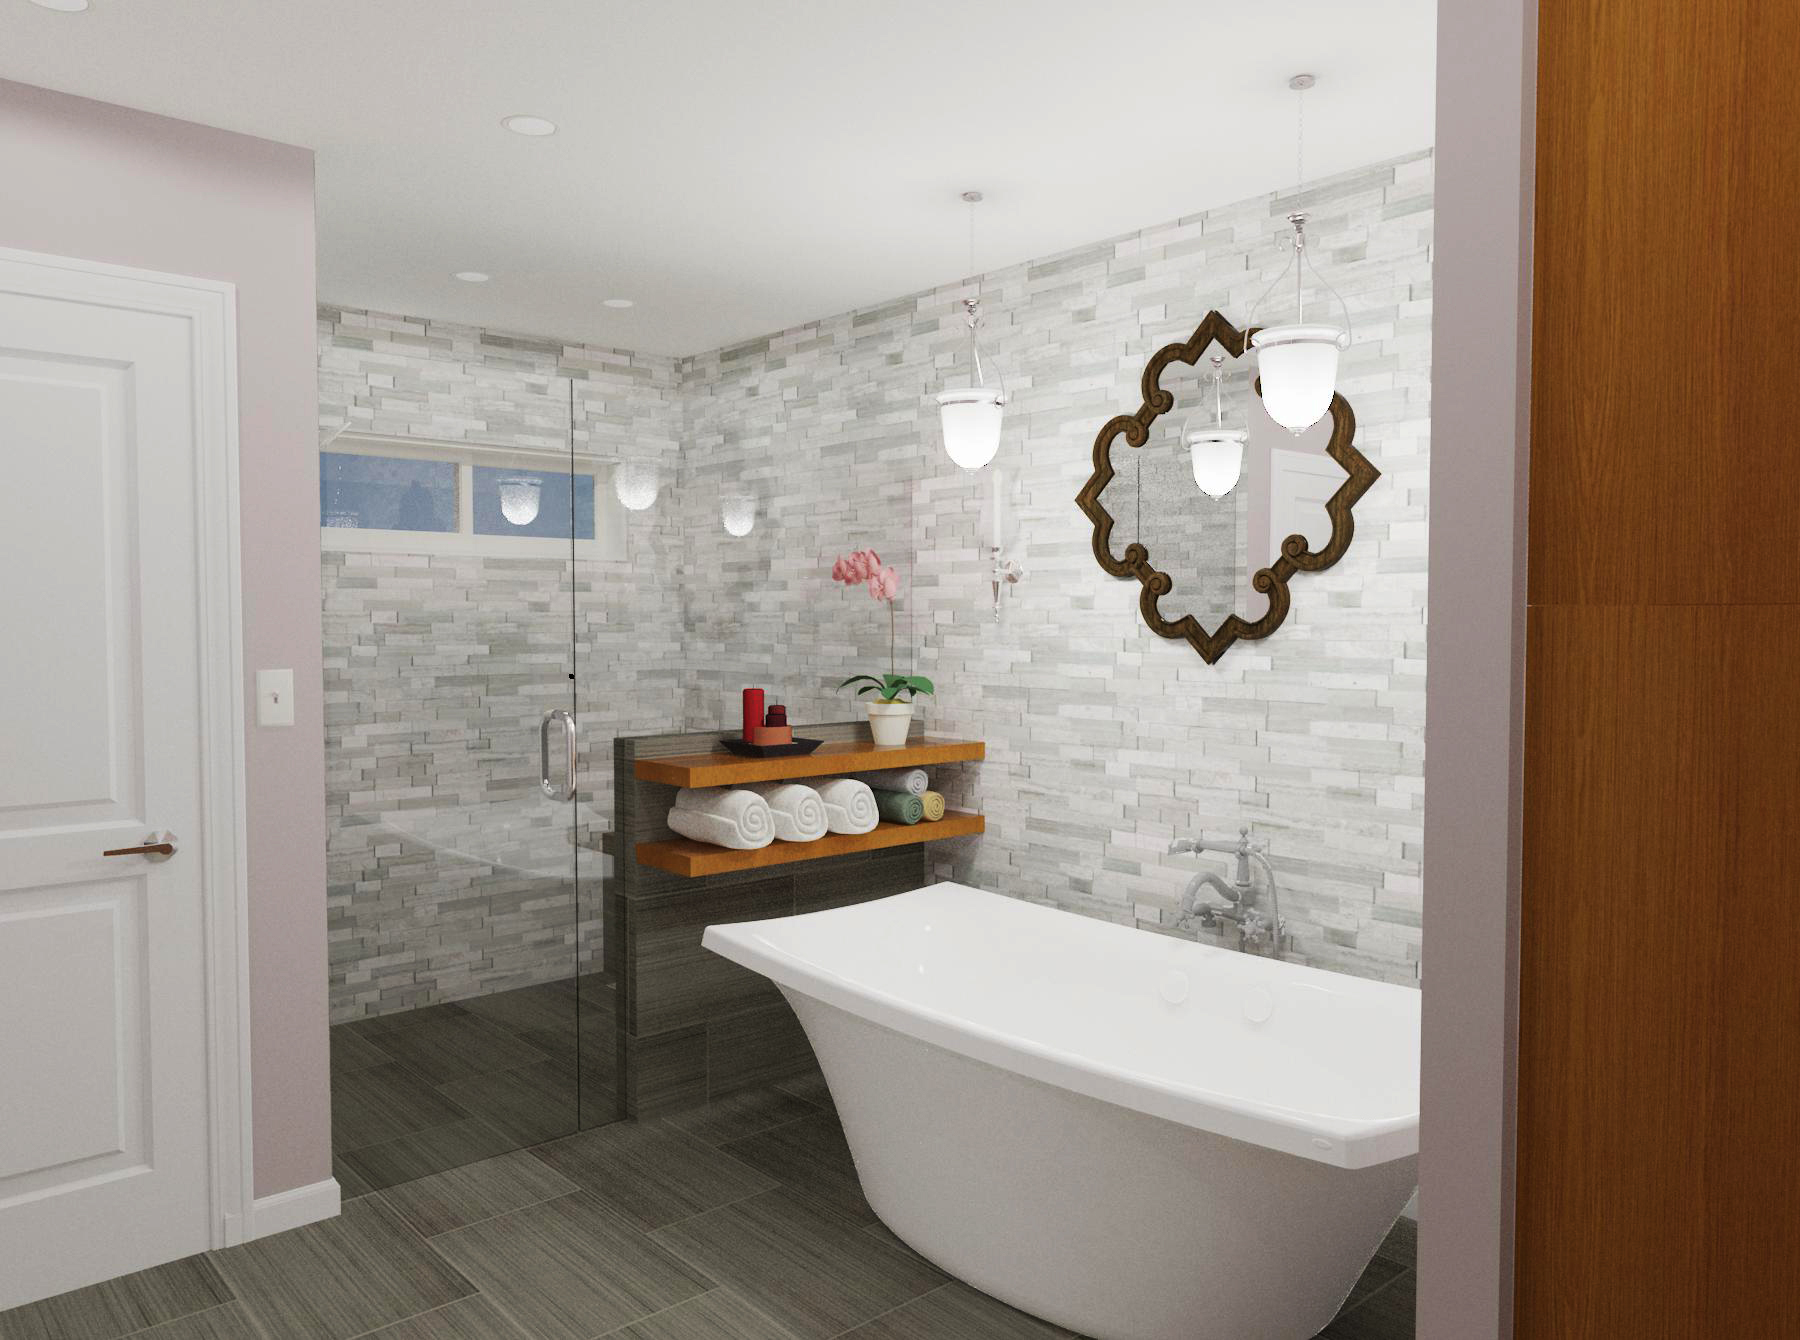 design-02-master-bathroom-tub-shower